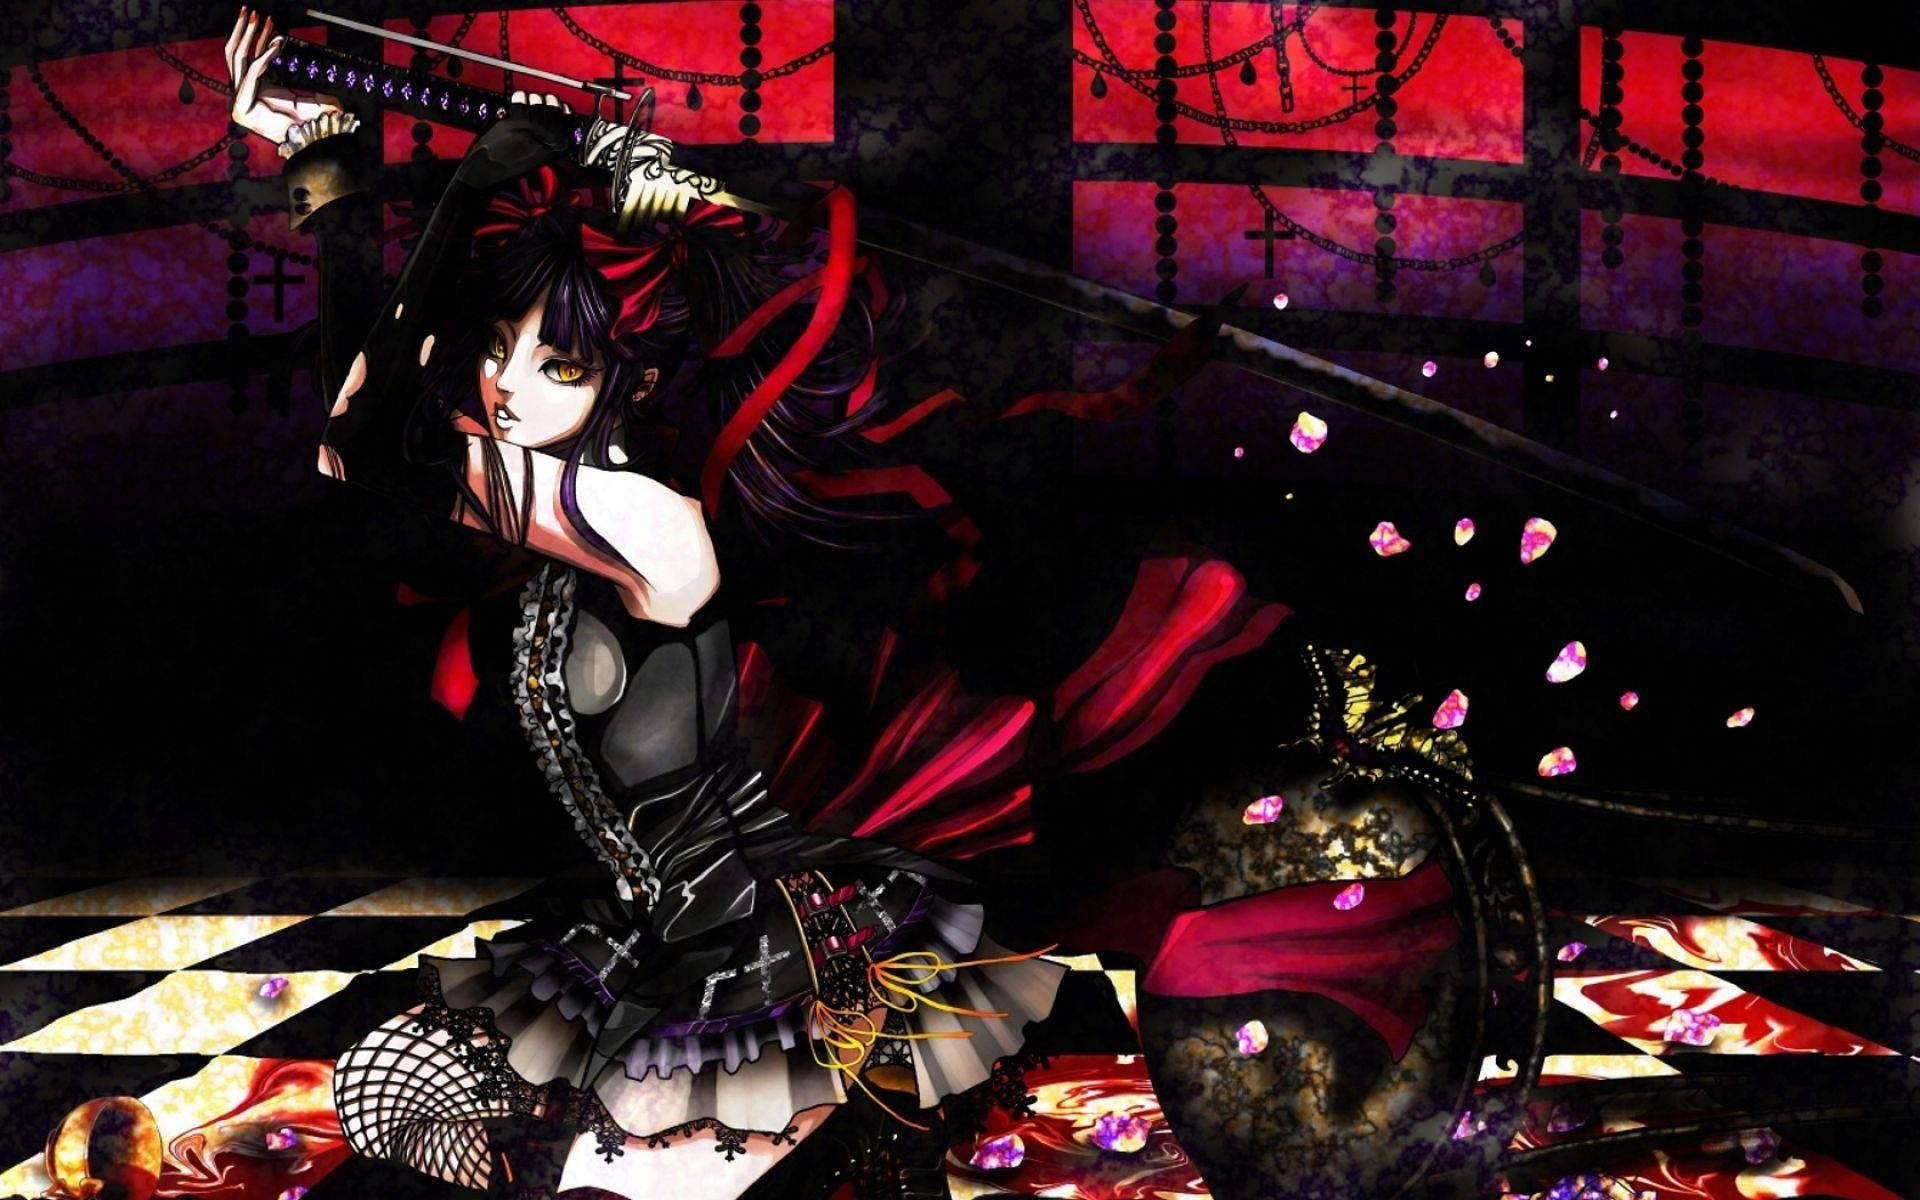 HD Gothic Anime Wallpapers. anime Pinterest Gothic